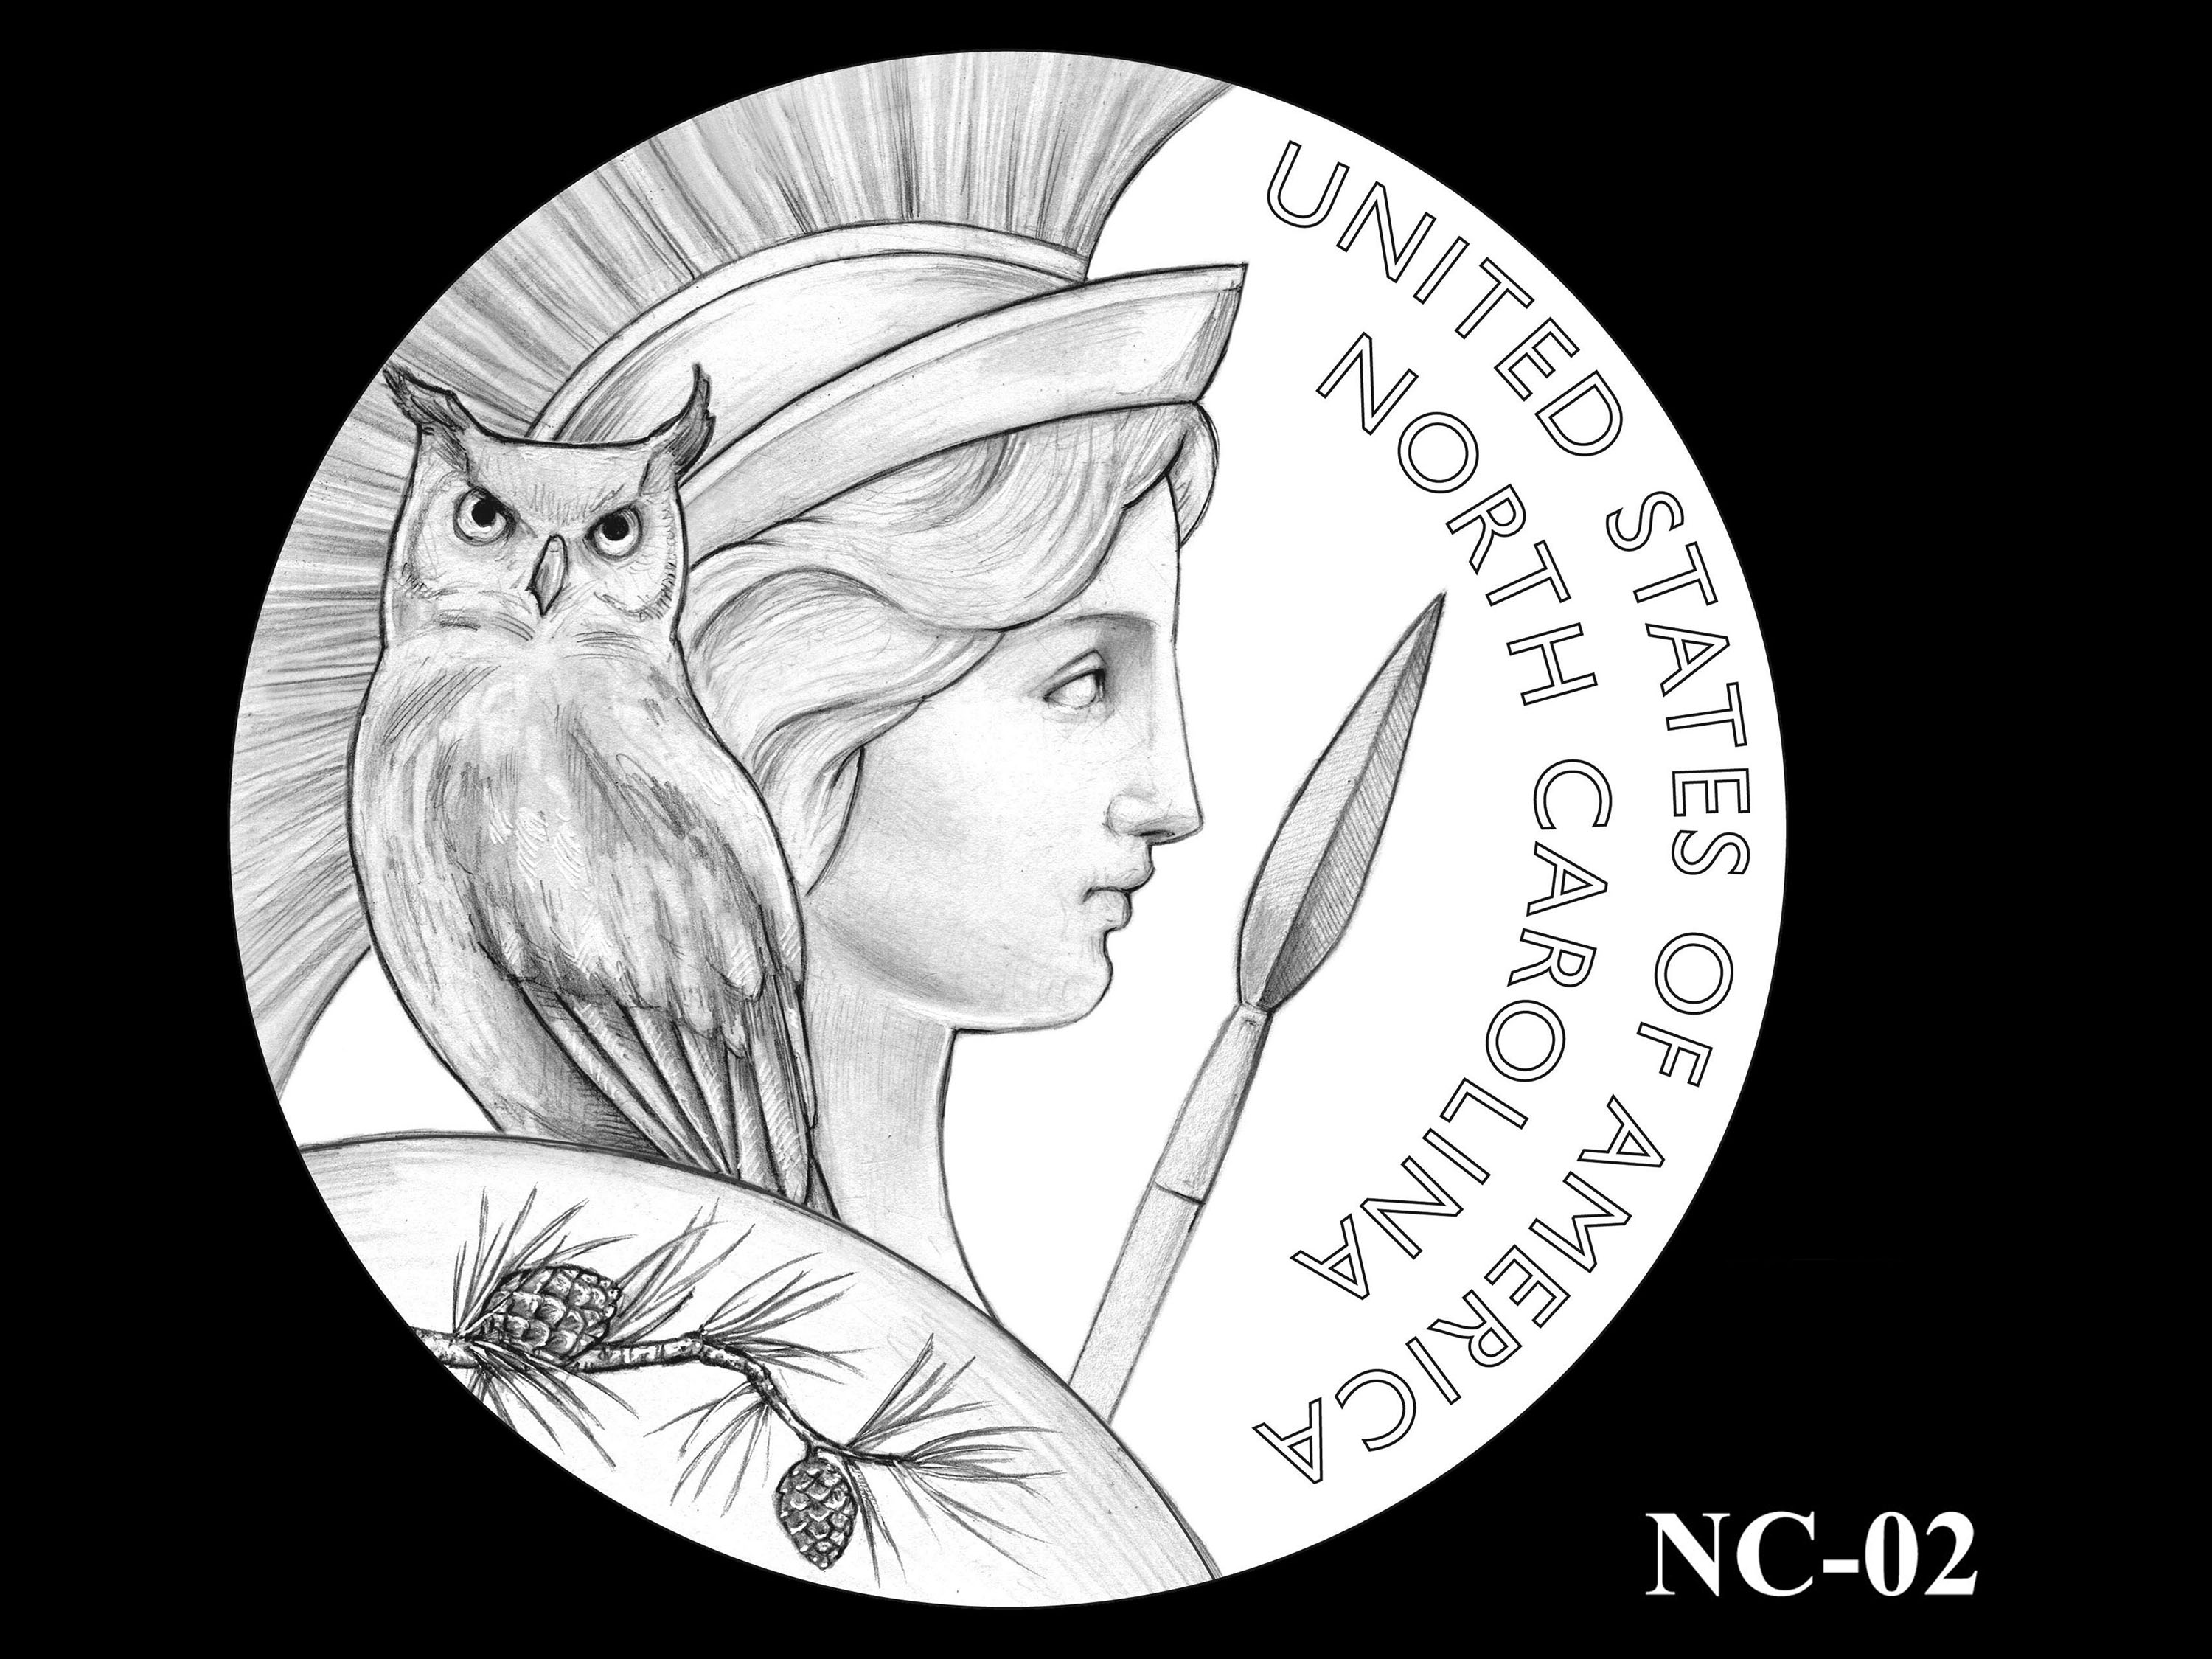 NC-02 -- 2021 American Innovation $1 Coin - North Carolina